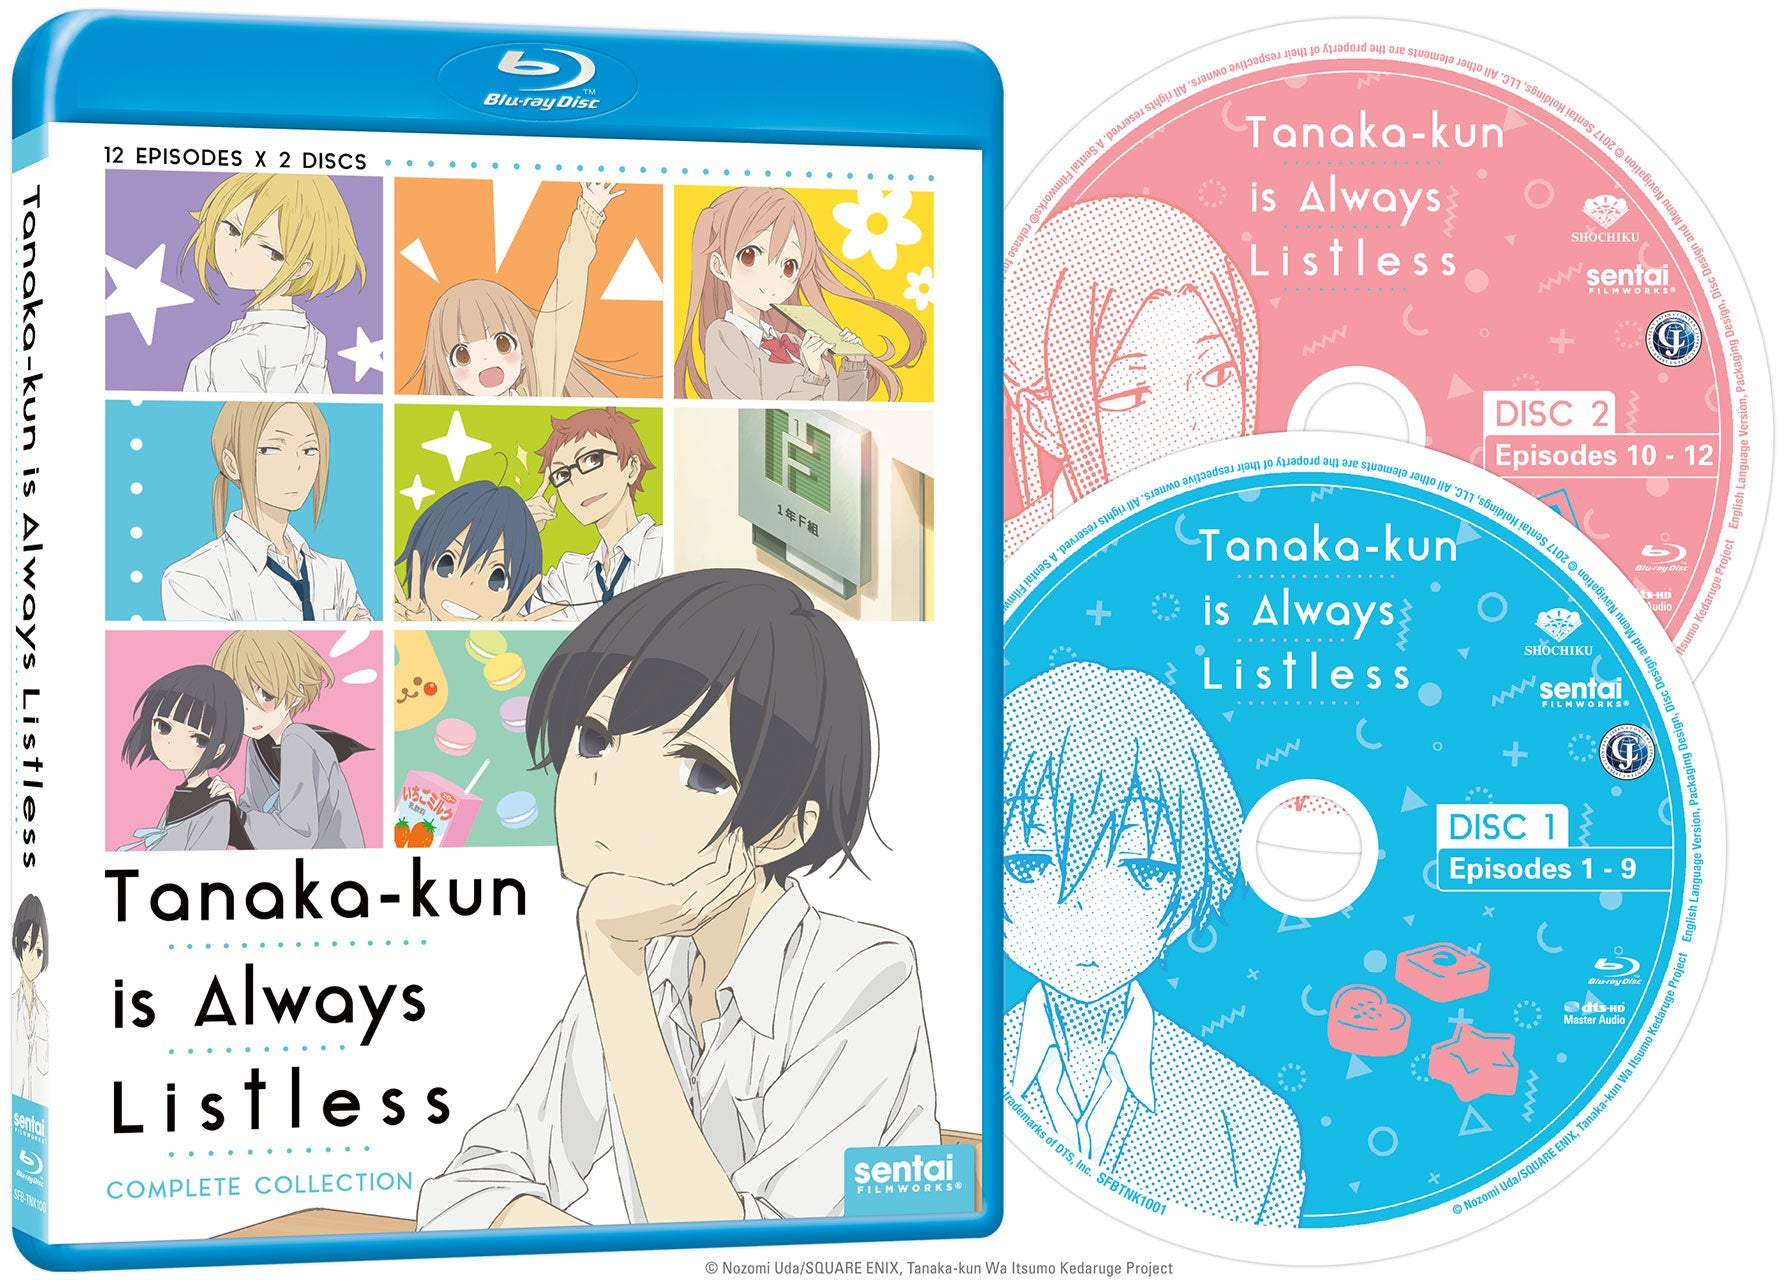 Tanaka-kun is Always Listless Complete Collection Blu-ray Disc Spread